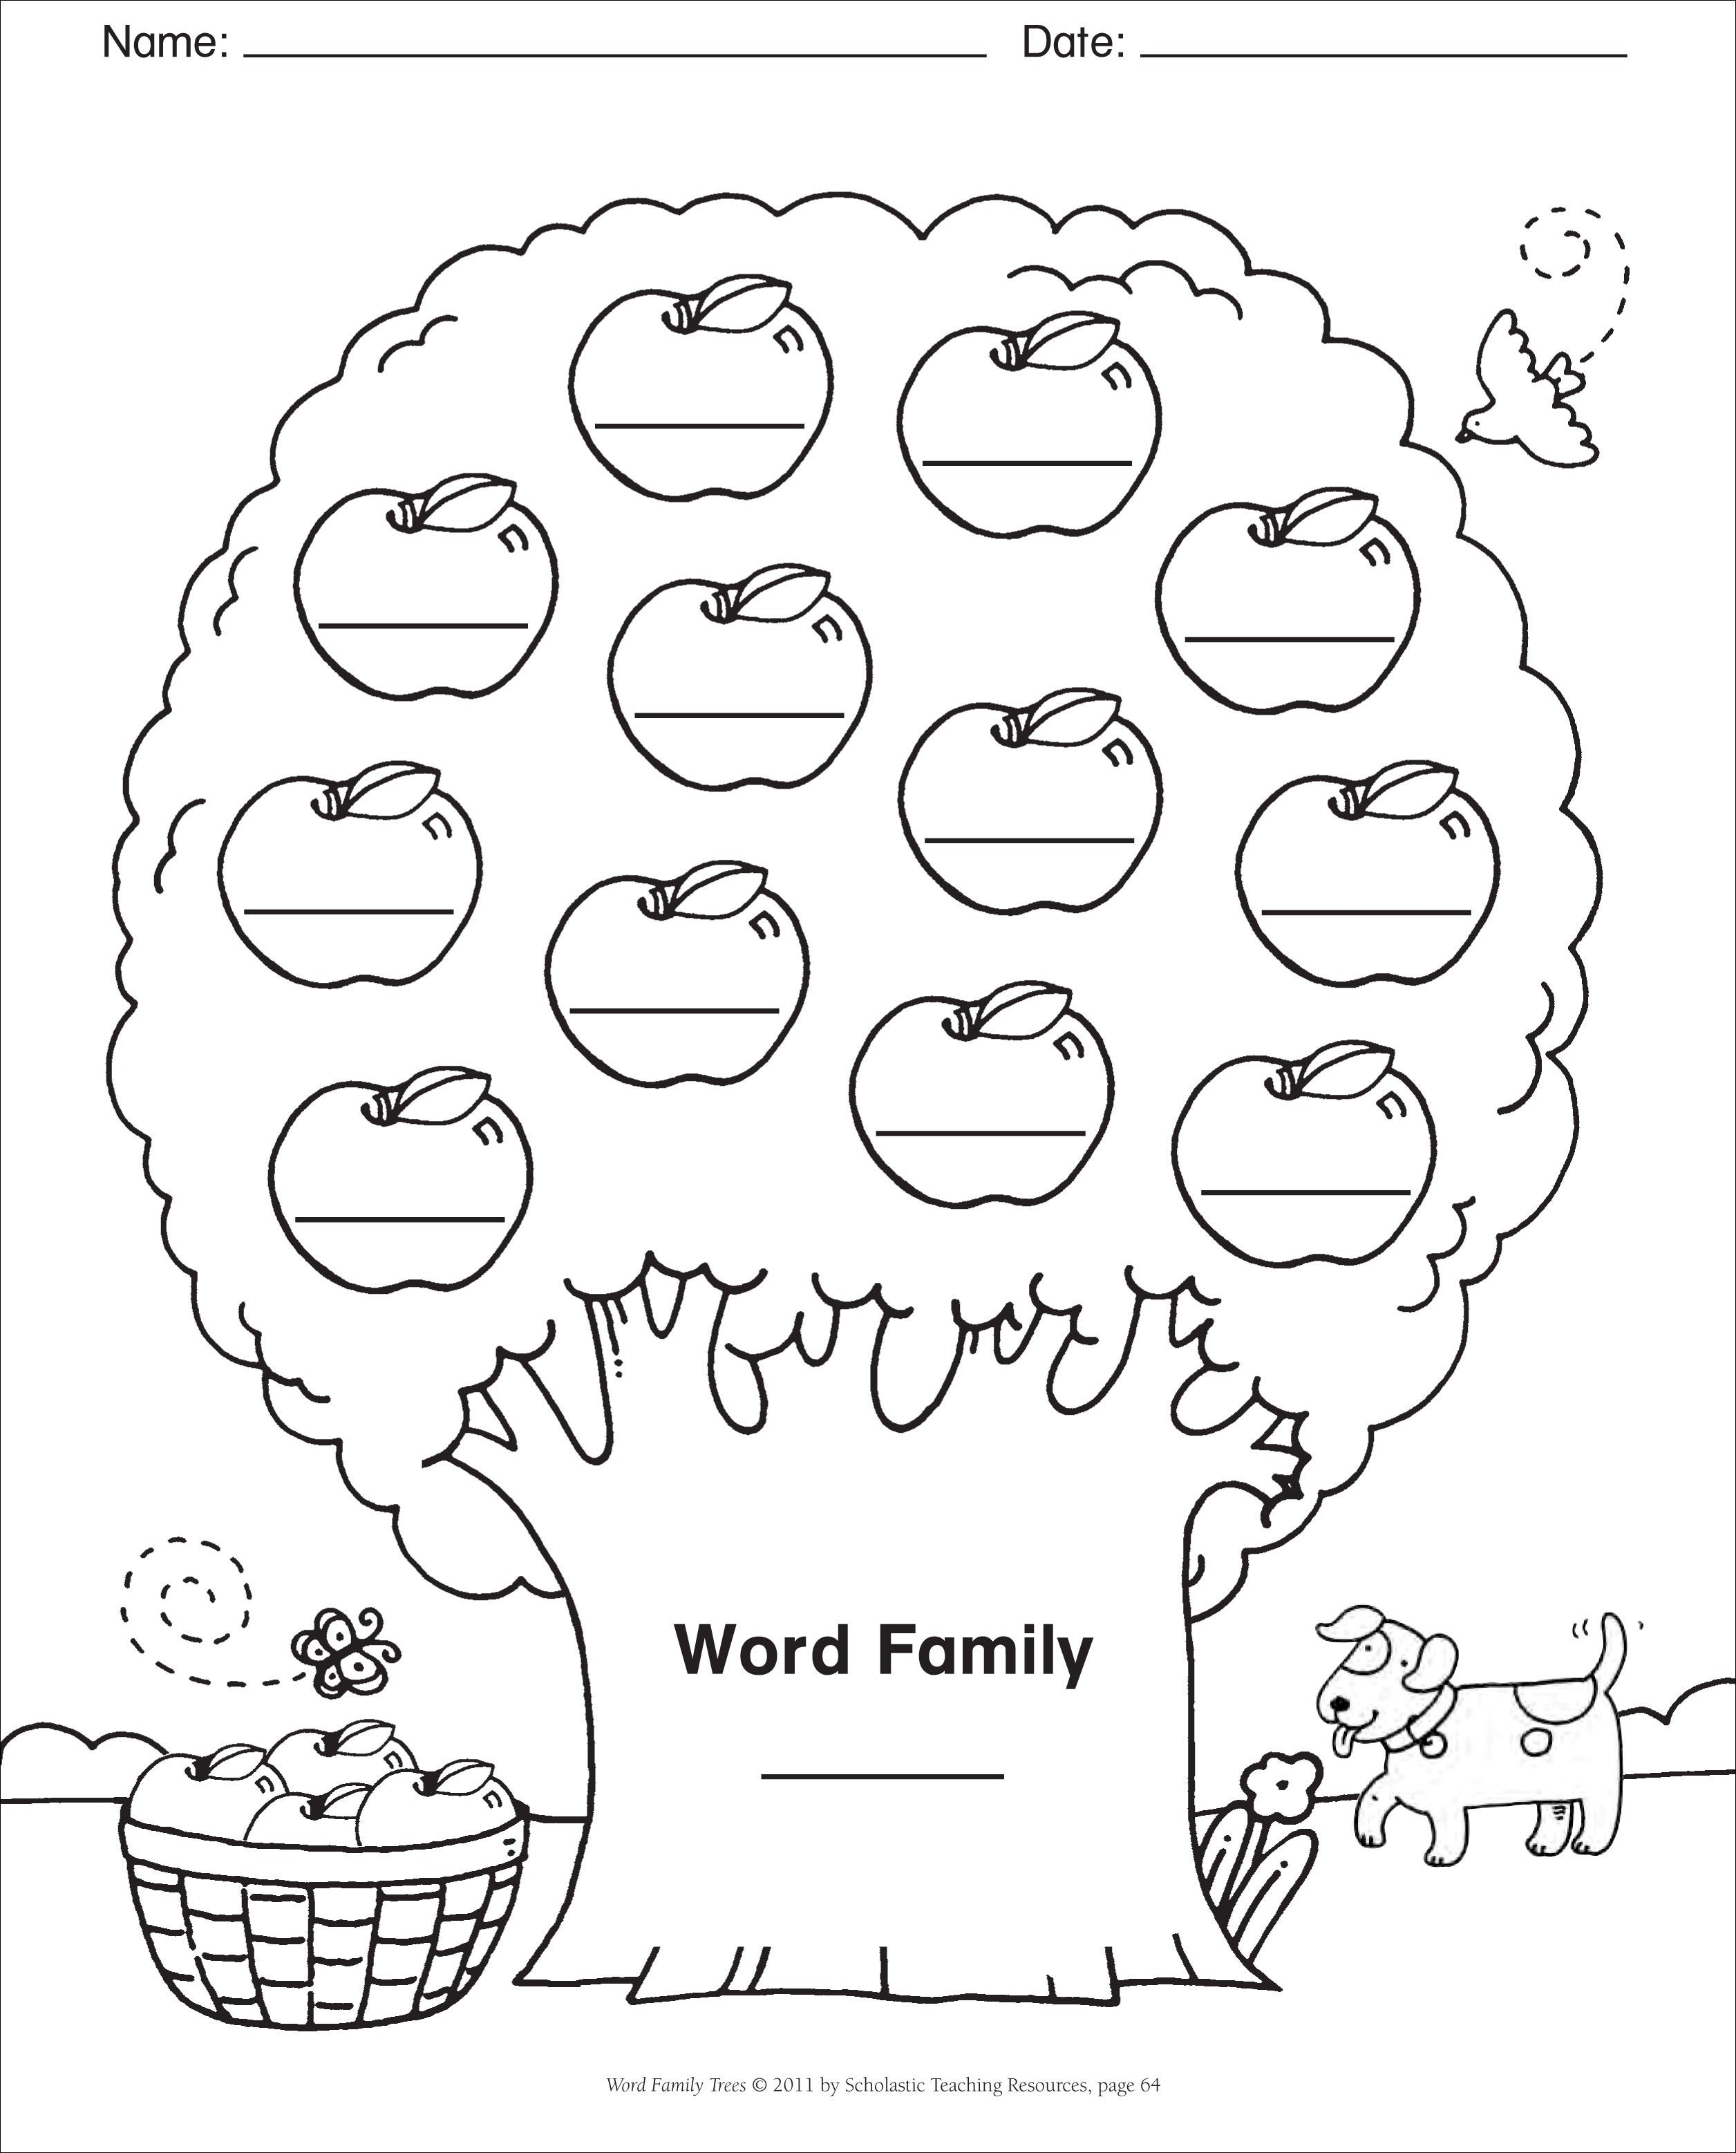 Word Family Template